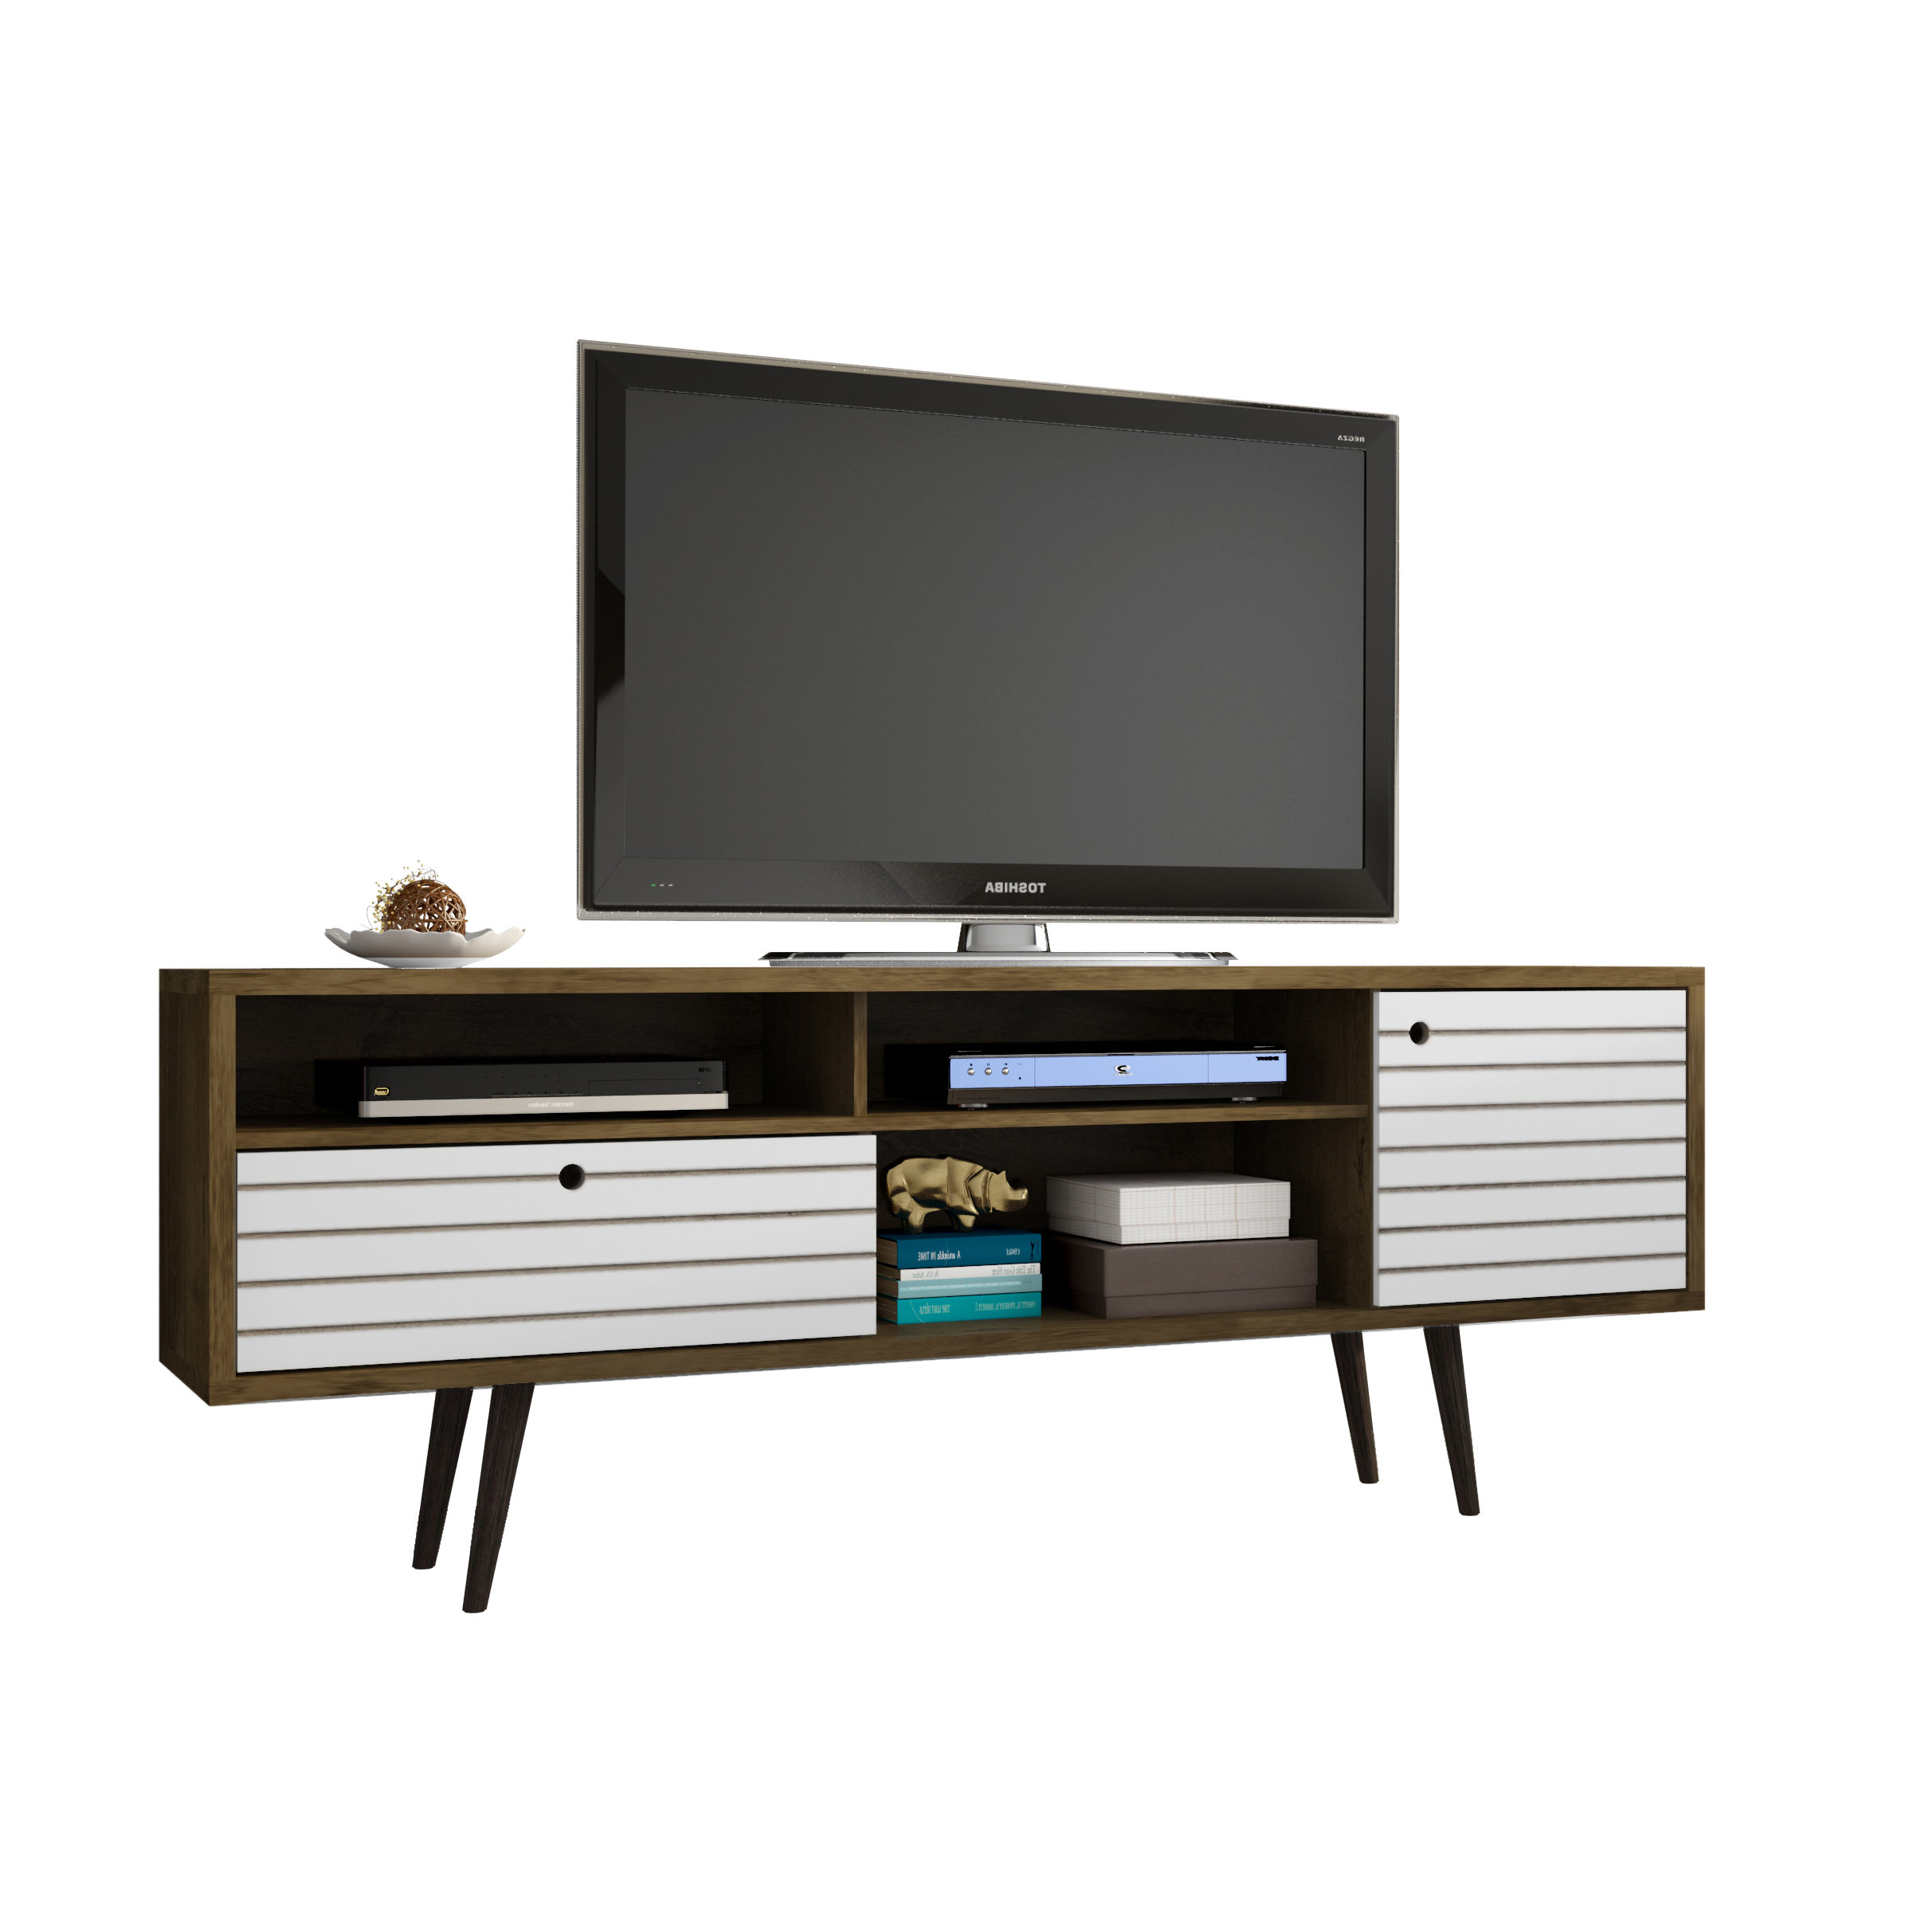 Allmodern Intended For Well Known Contemporary Tv Cabinets For Flat Screens (View 4 of 20)